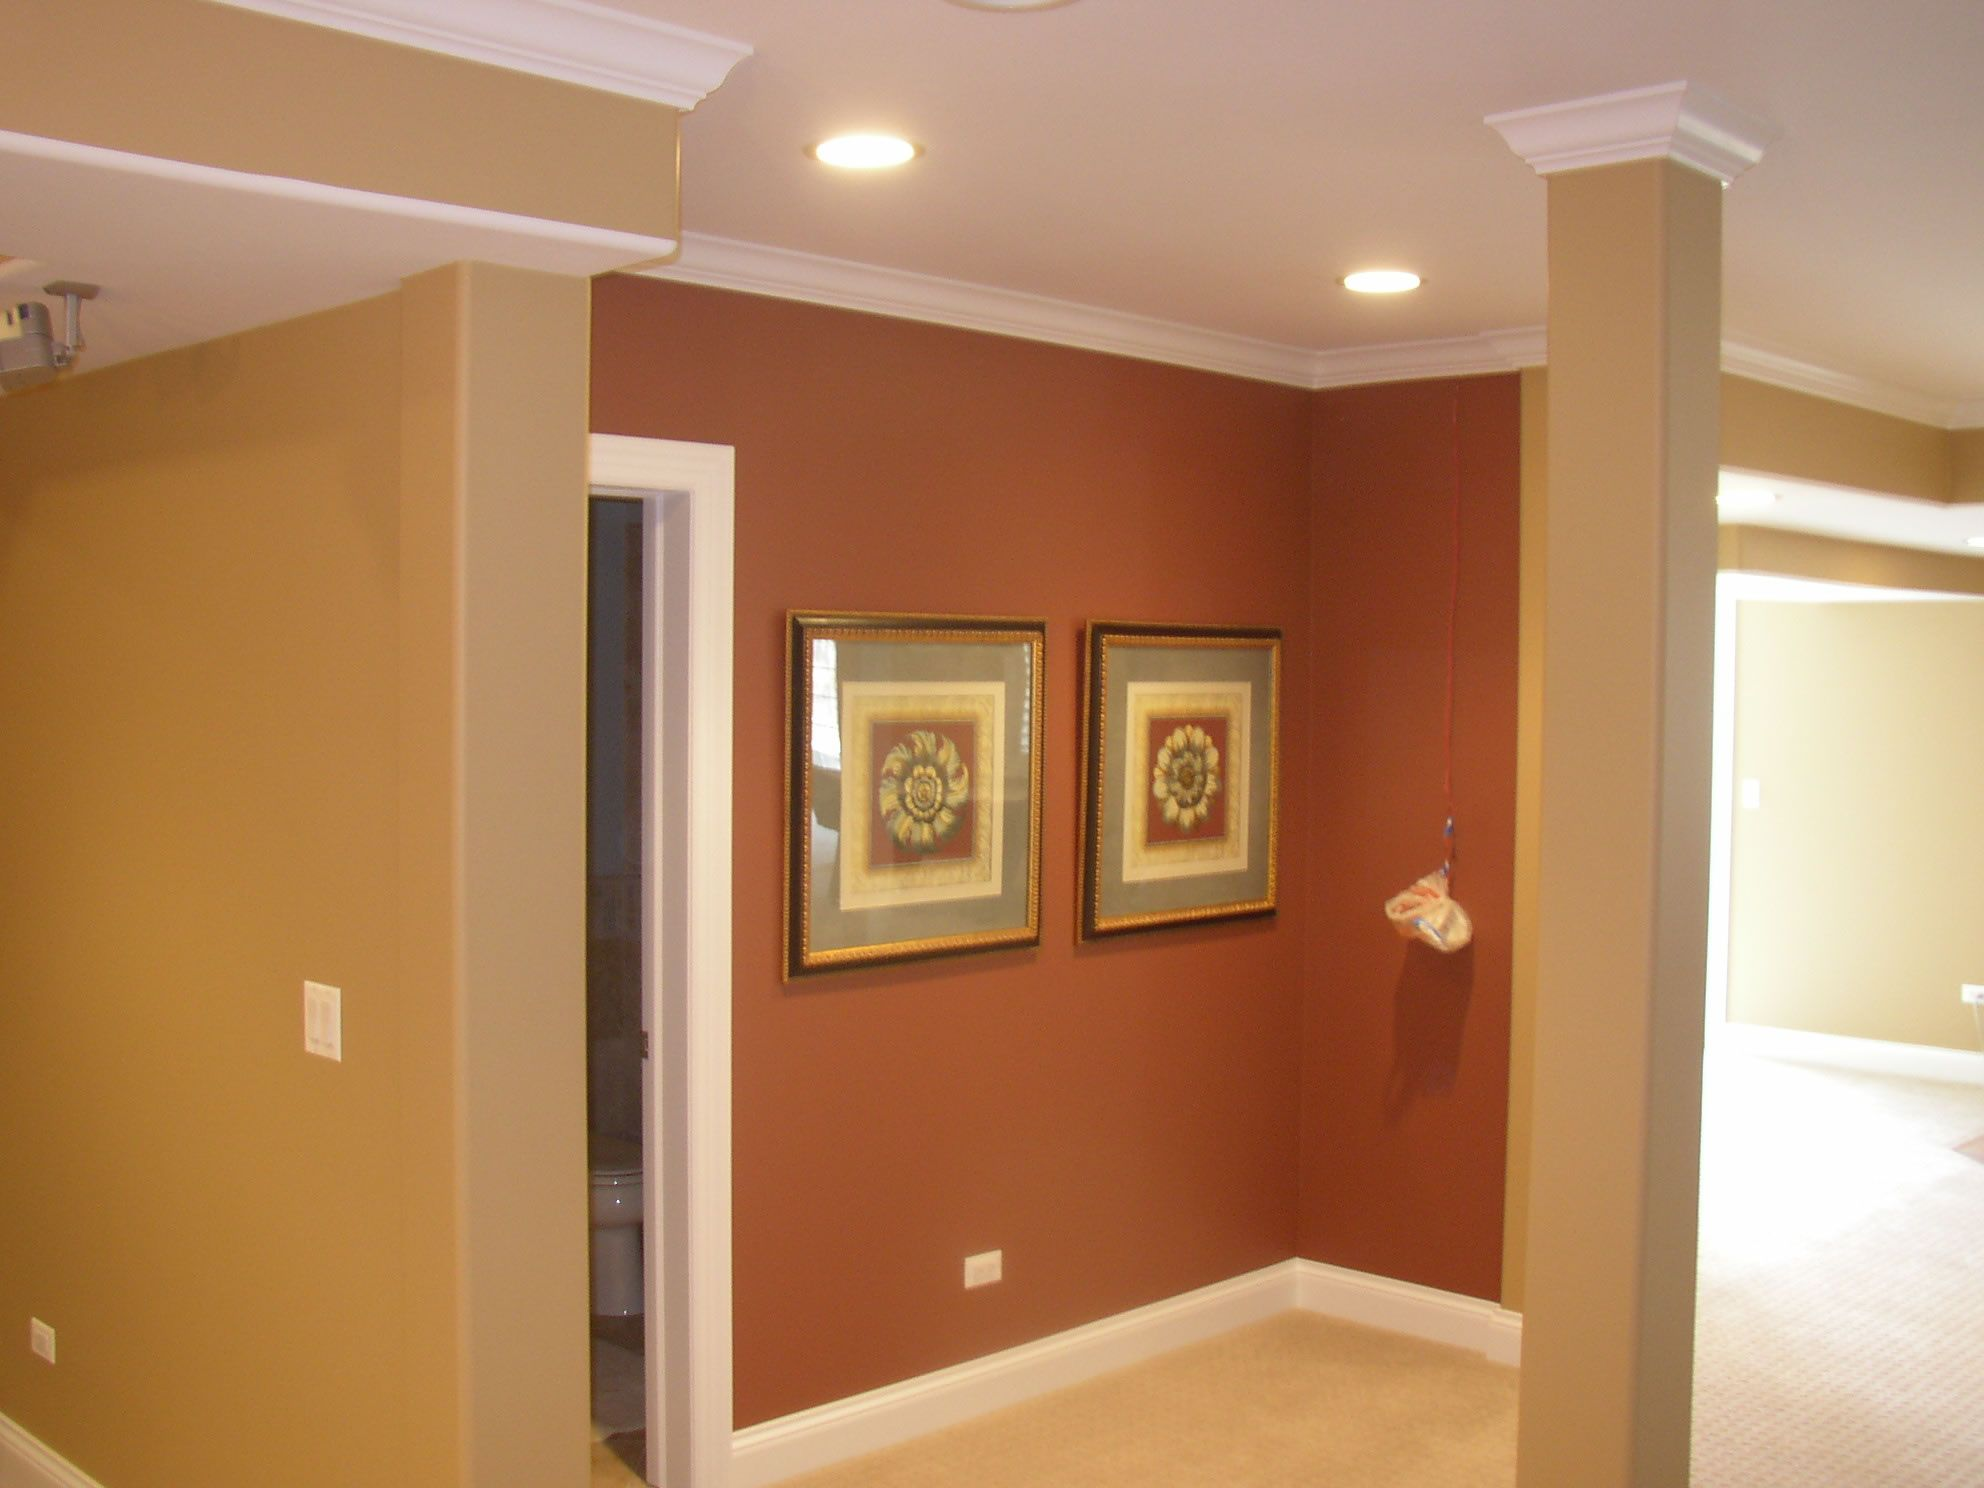 Bedroom paint two different colors - Interior Paint Colors To Request A Free Estimate For Your Interior Painting